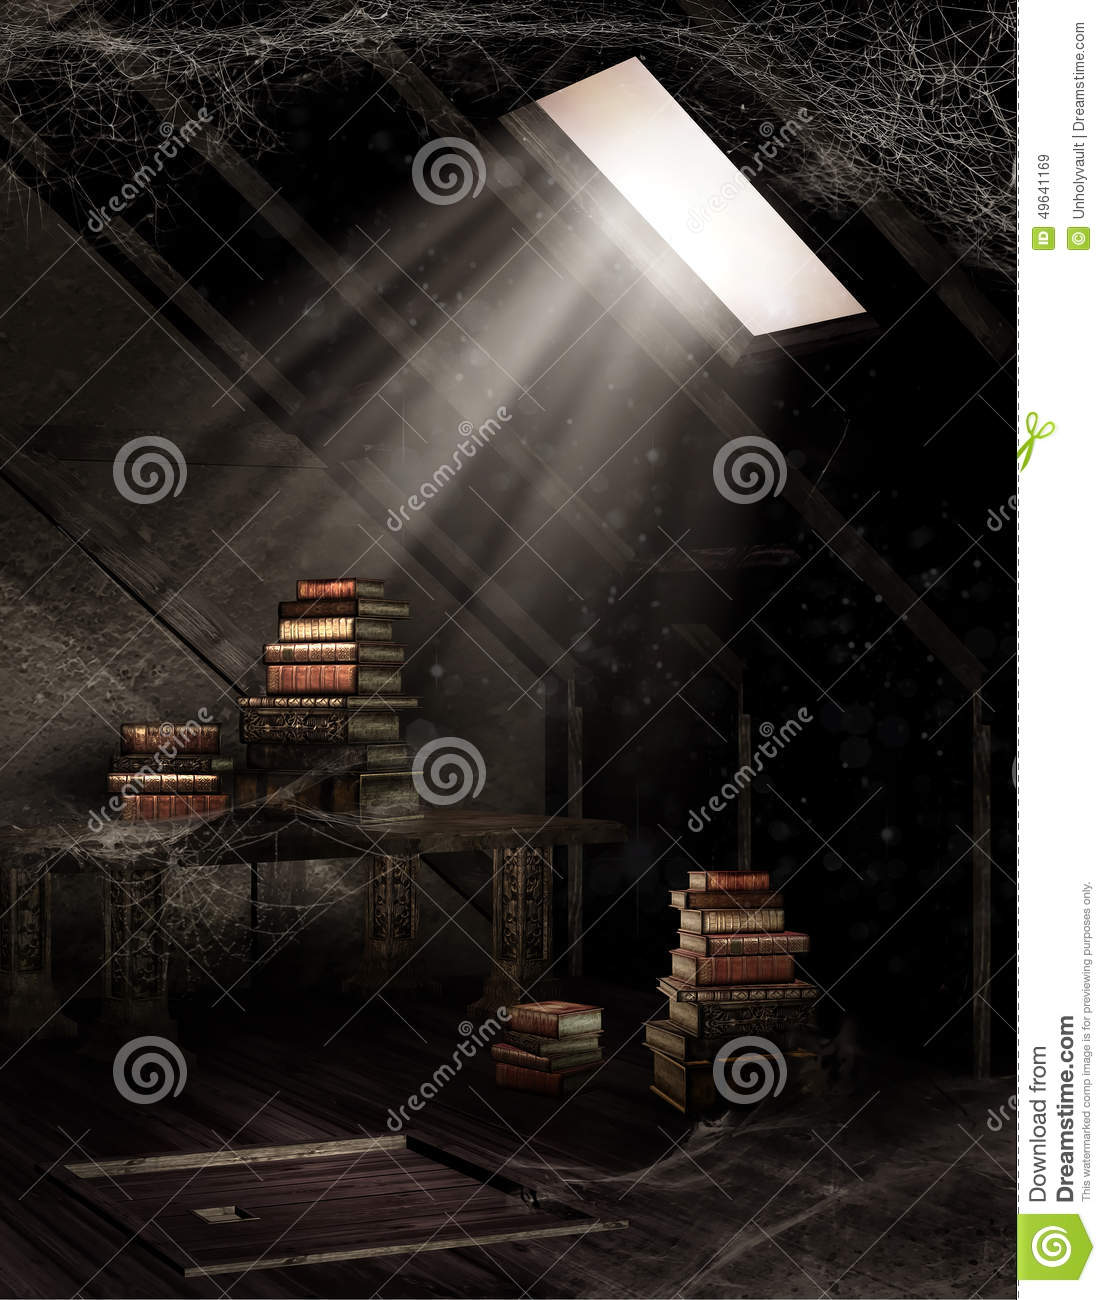 Dusty attic with books